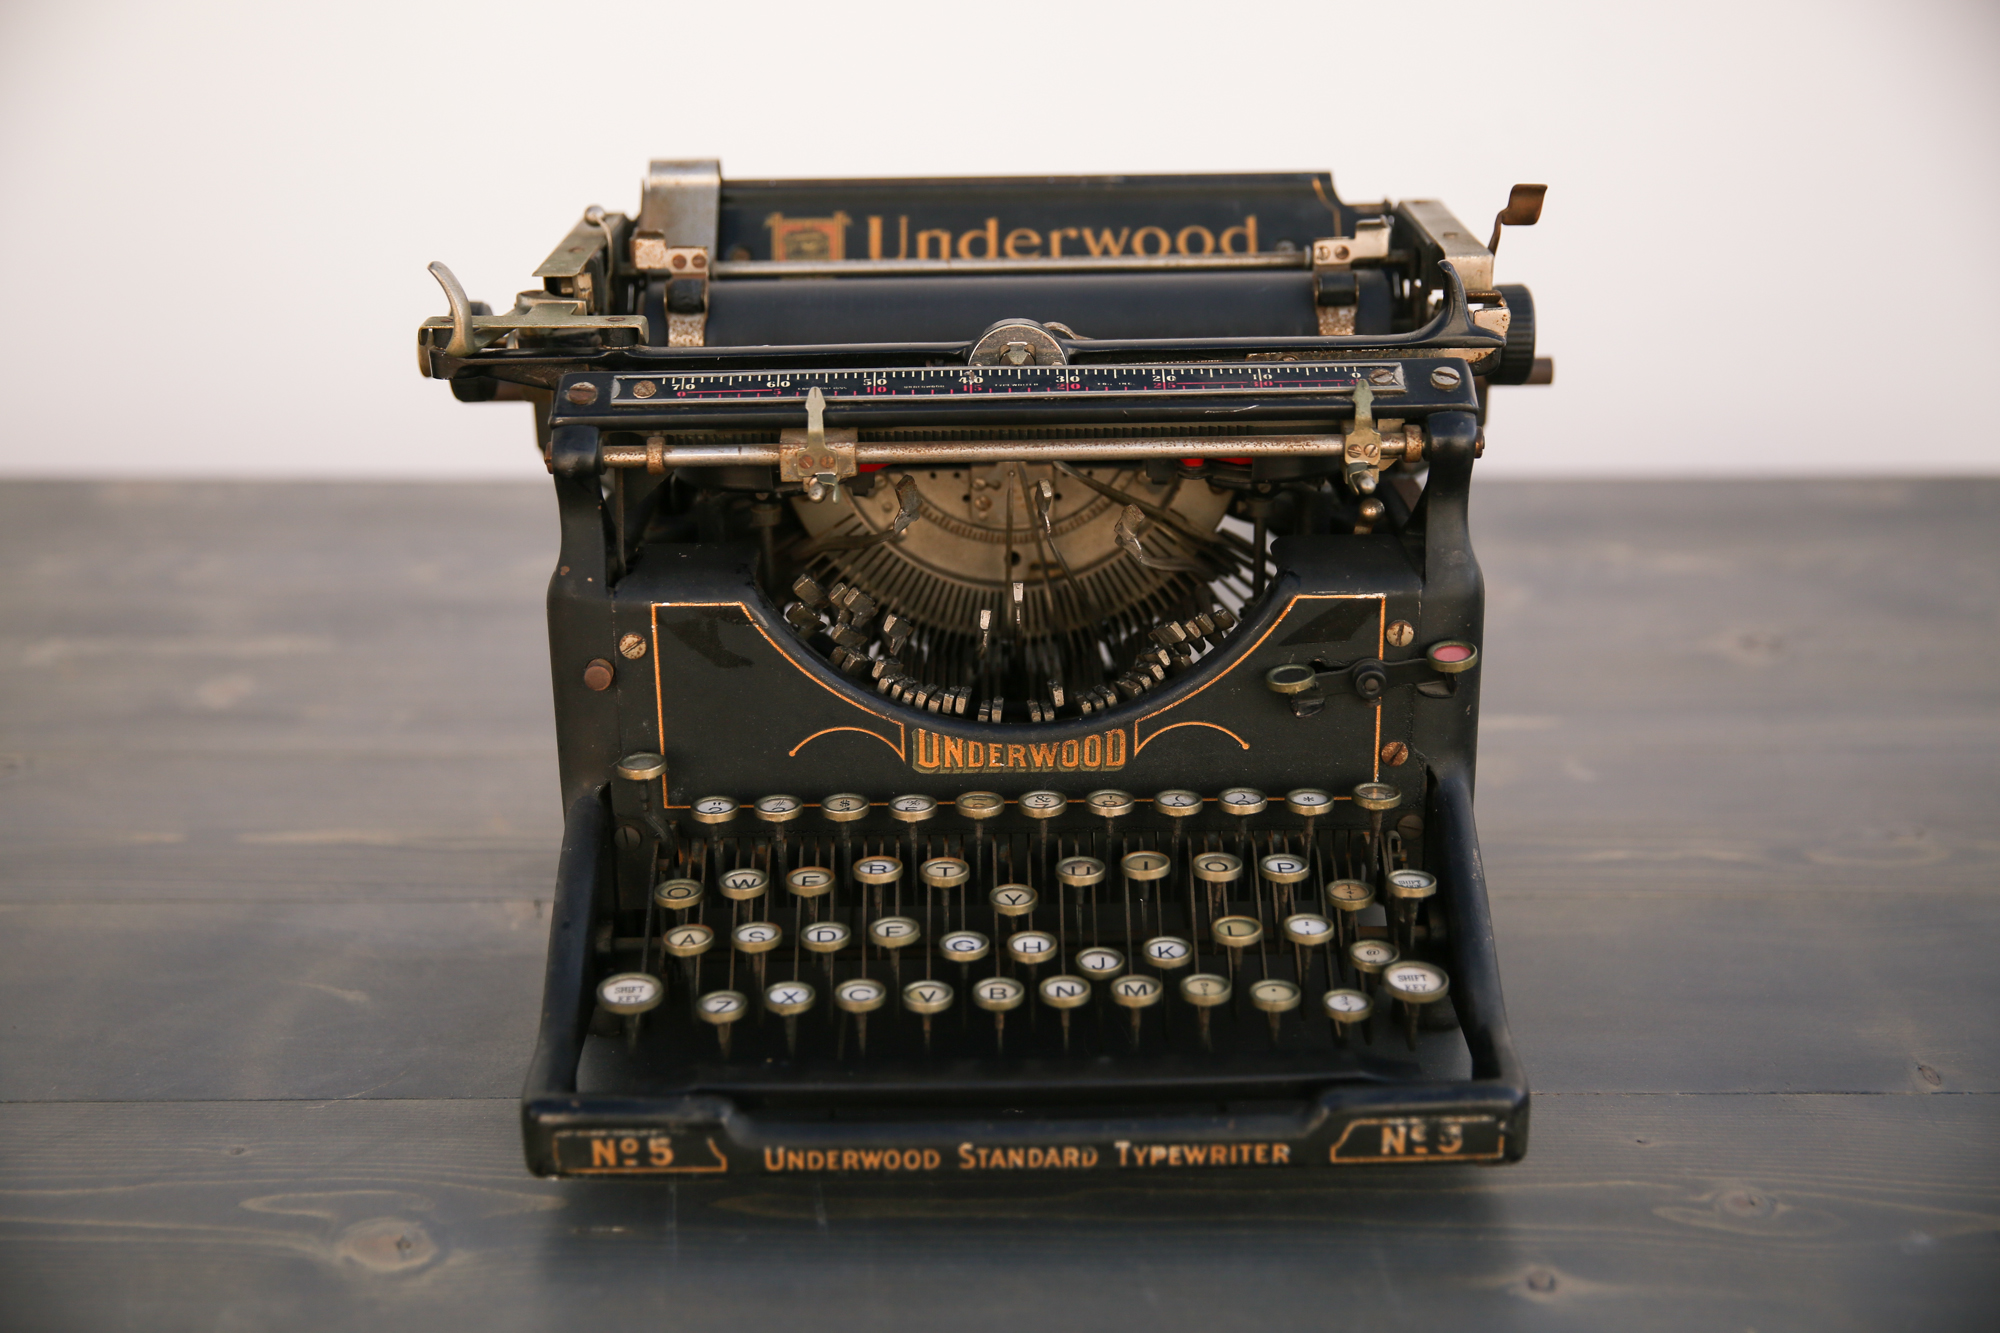 Underwood Vintage Typewriter - Out Of The Dust Rentals